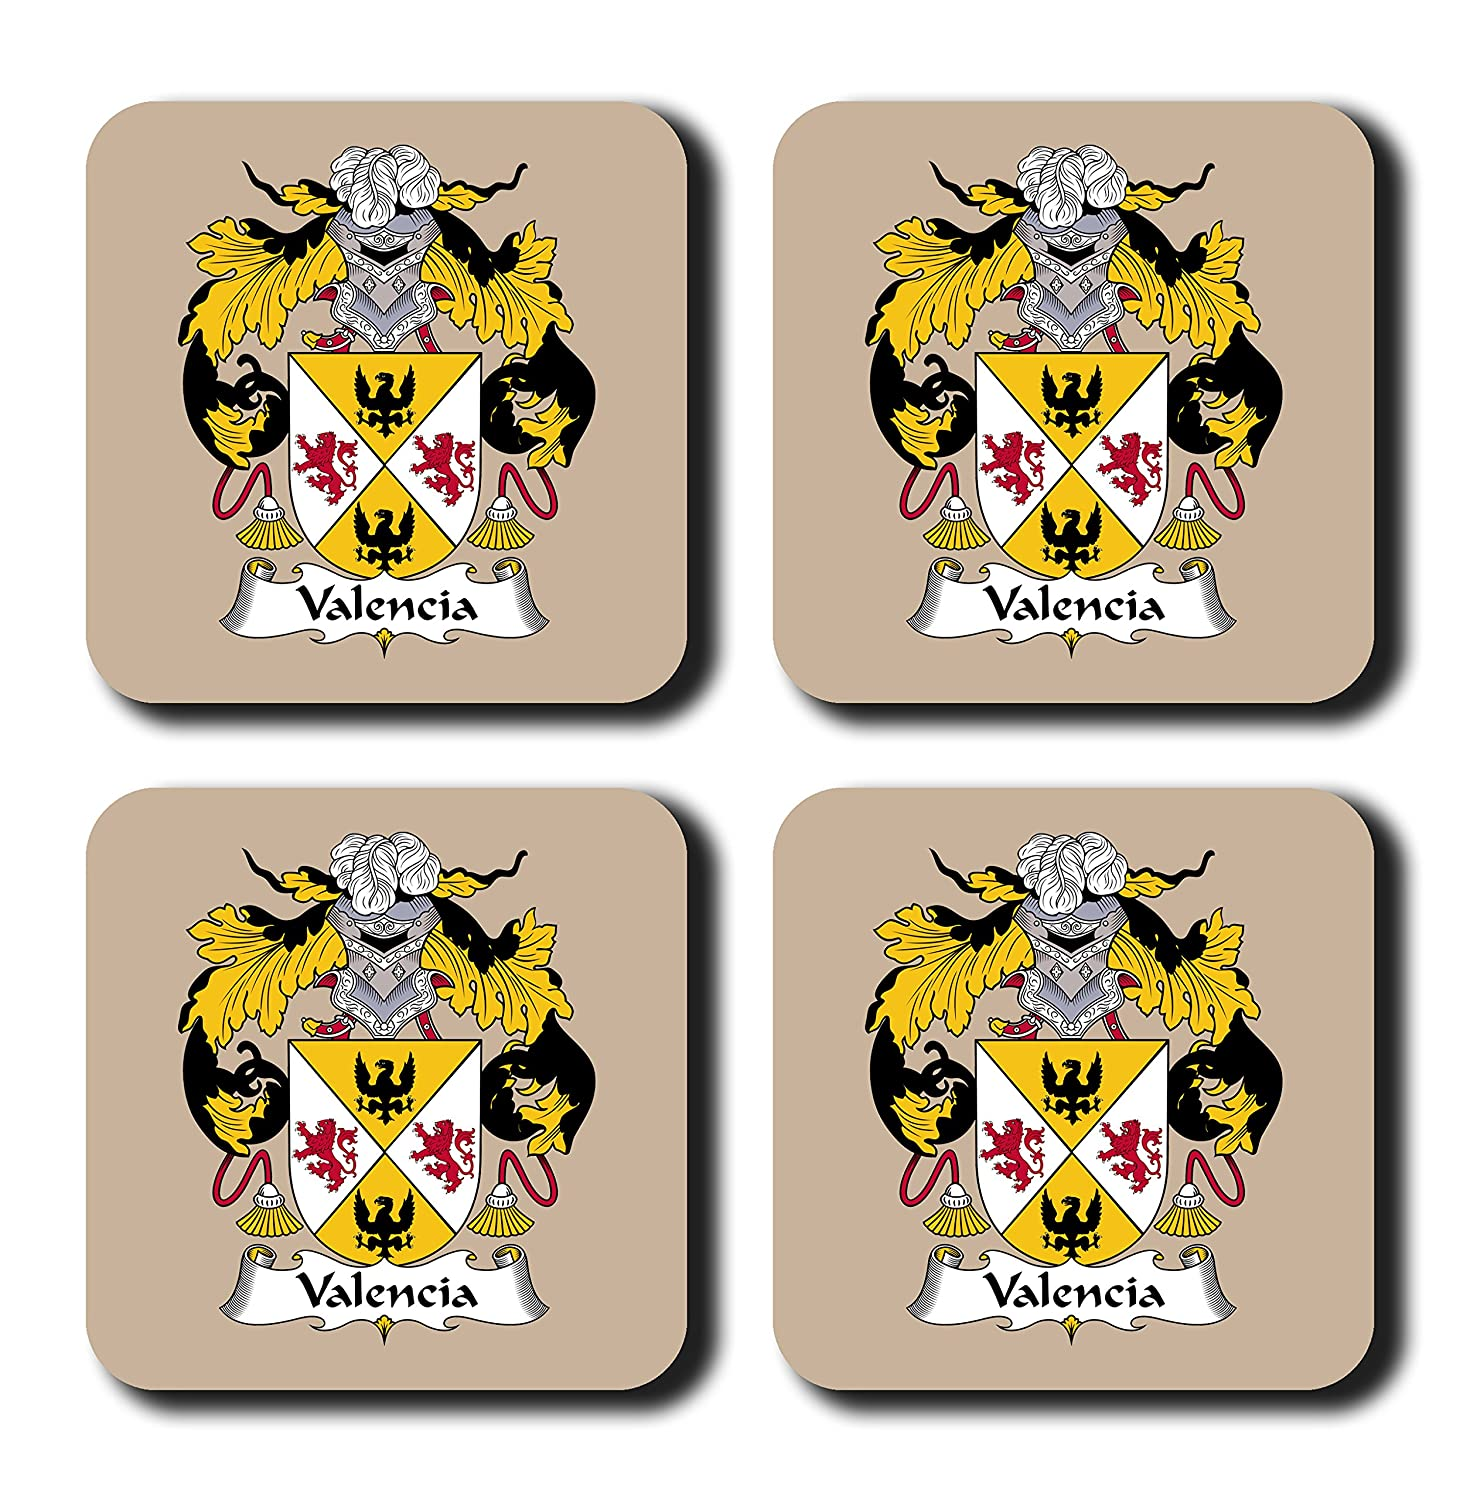 Valencia coat of arms family crest coaster set by carpe diem designs made in the u s a